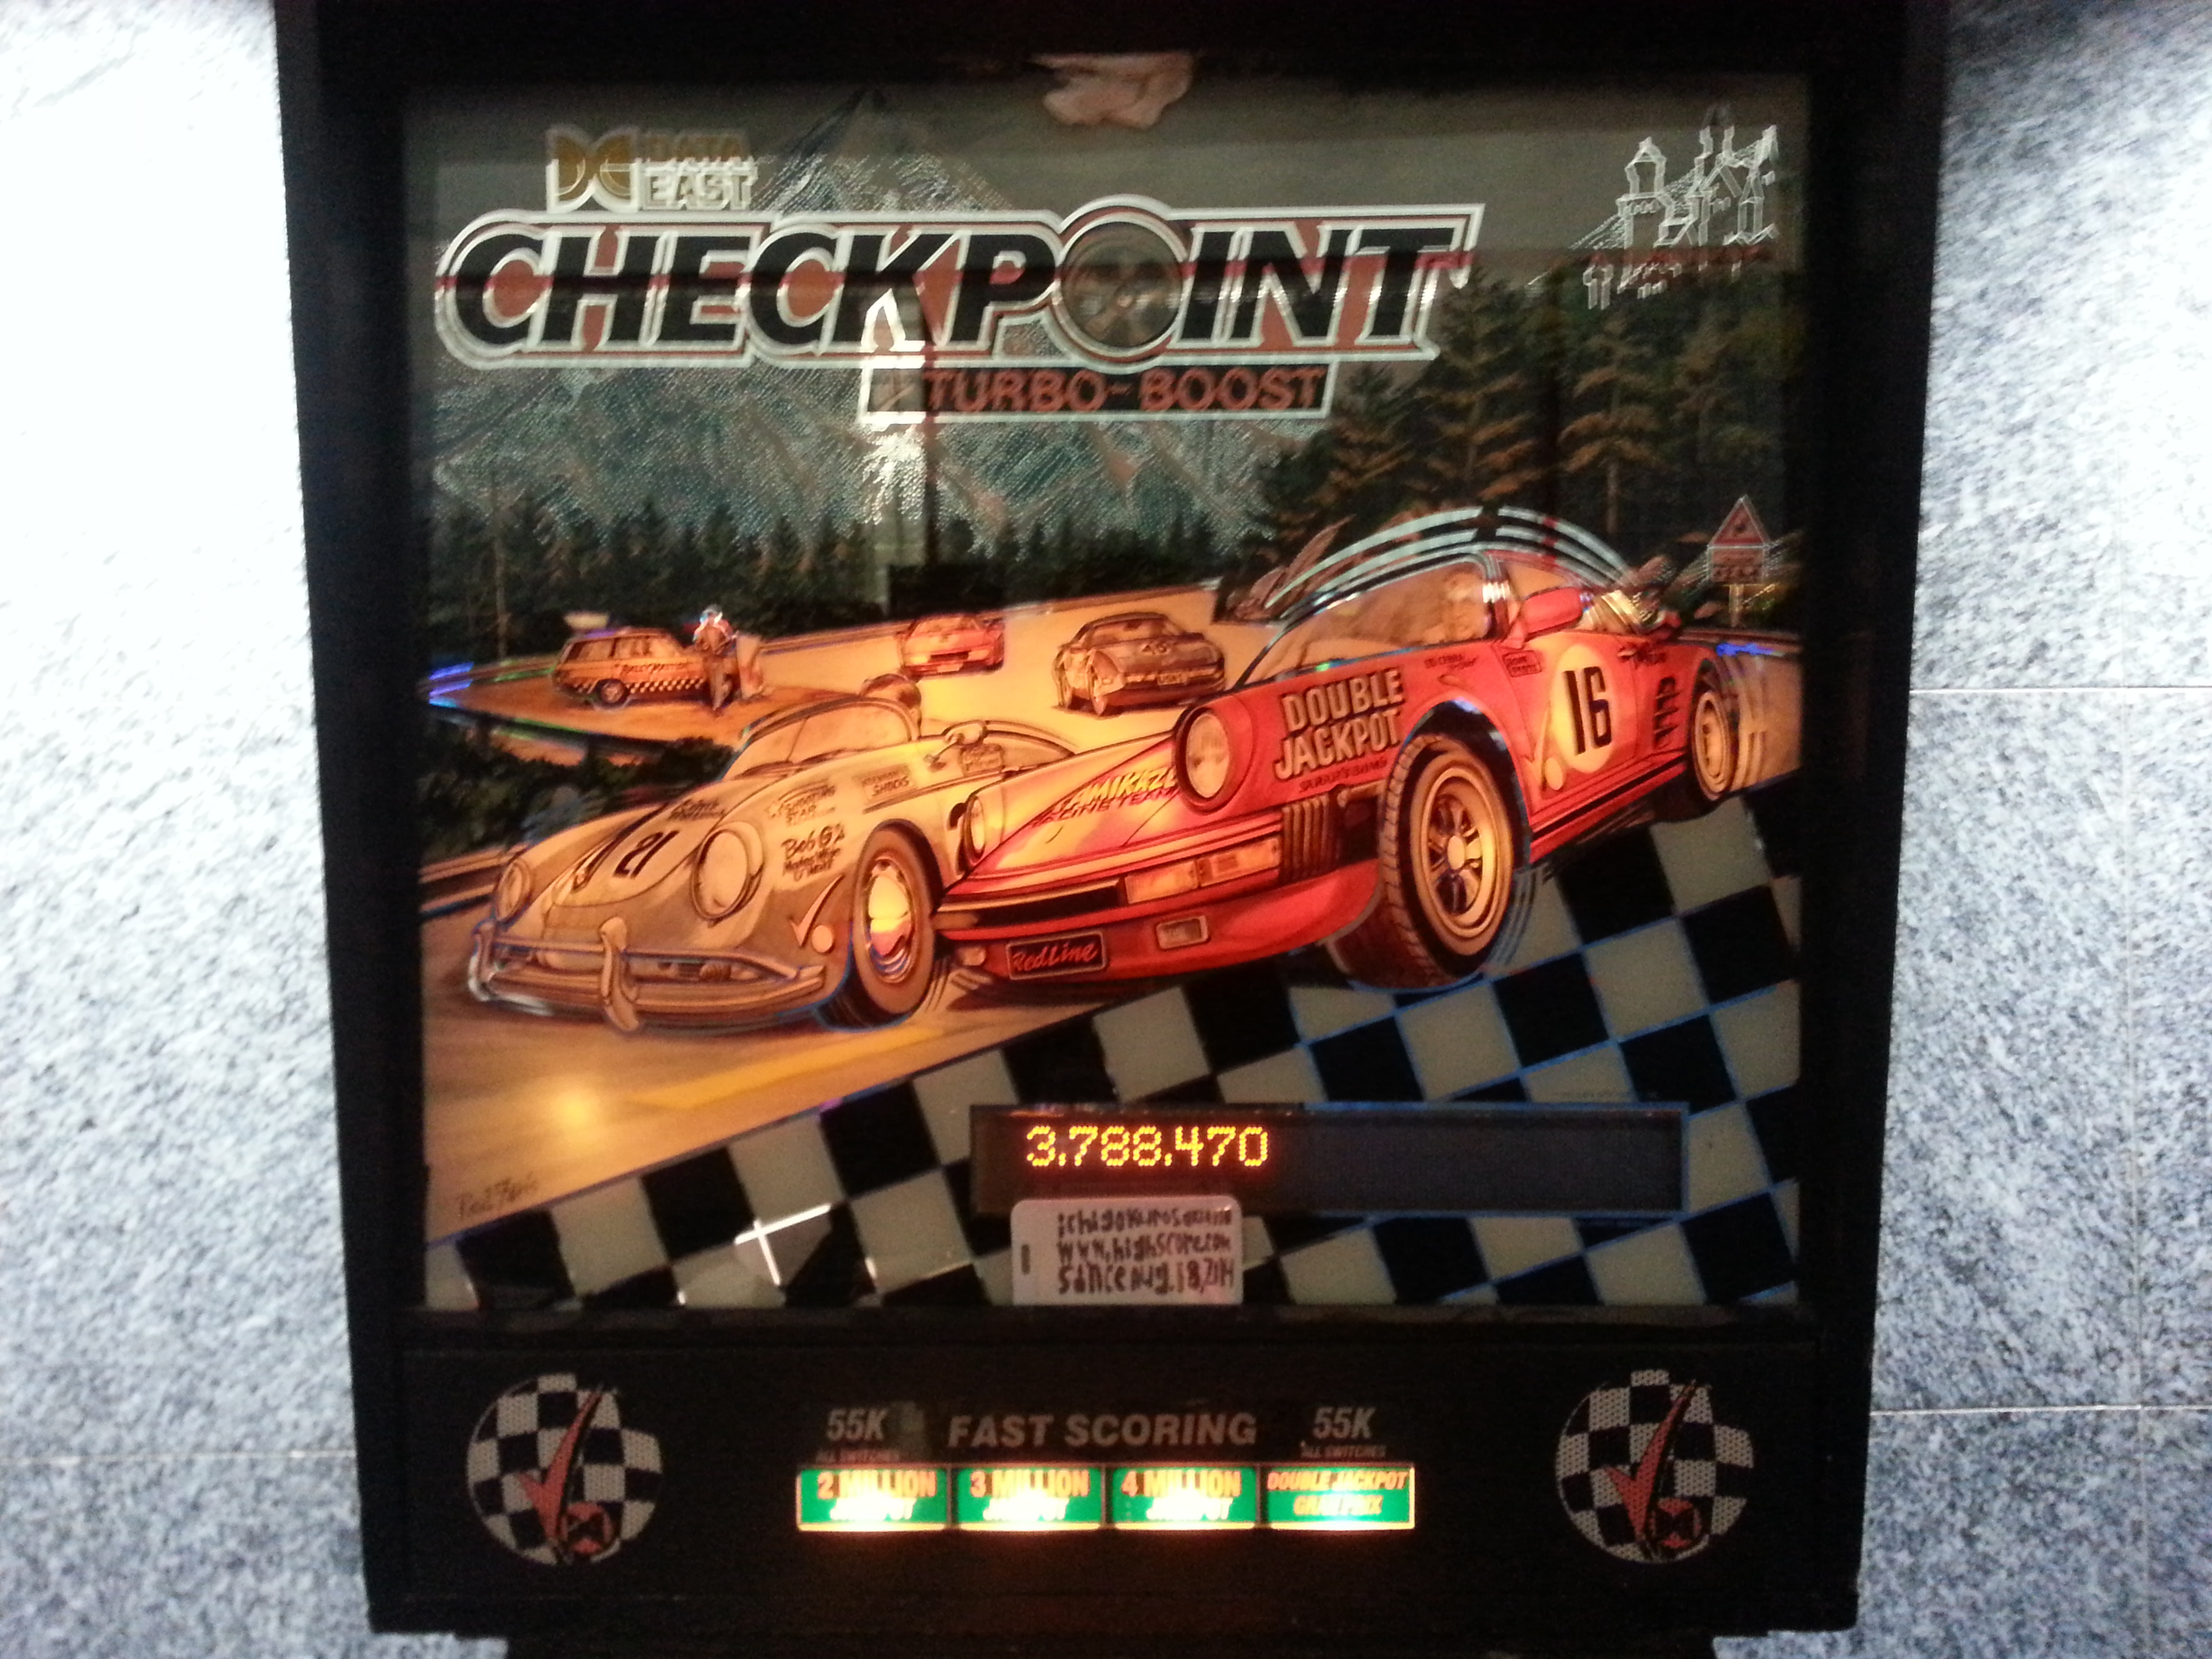 Checkpoint 3,788,470 points